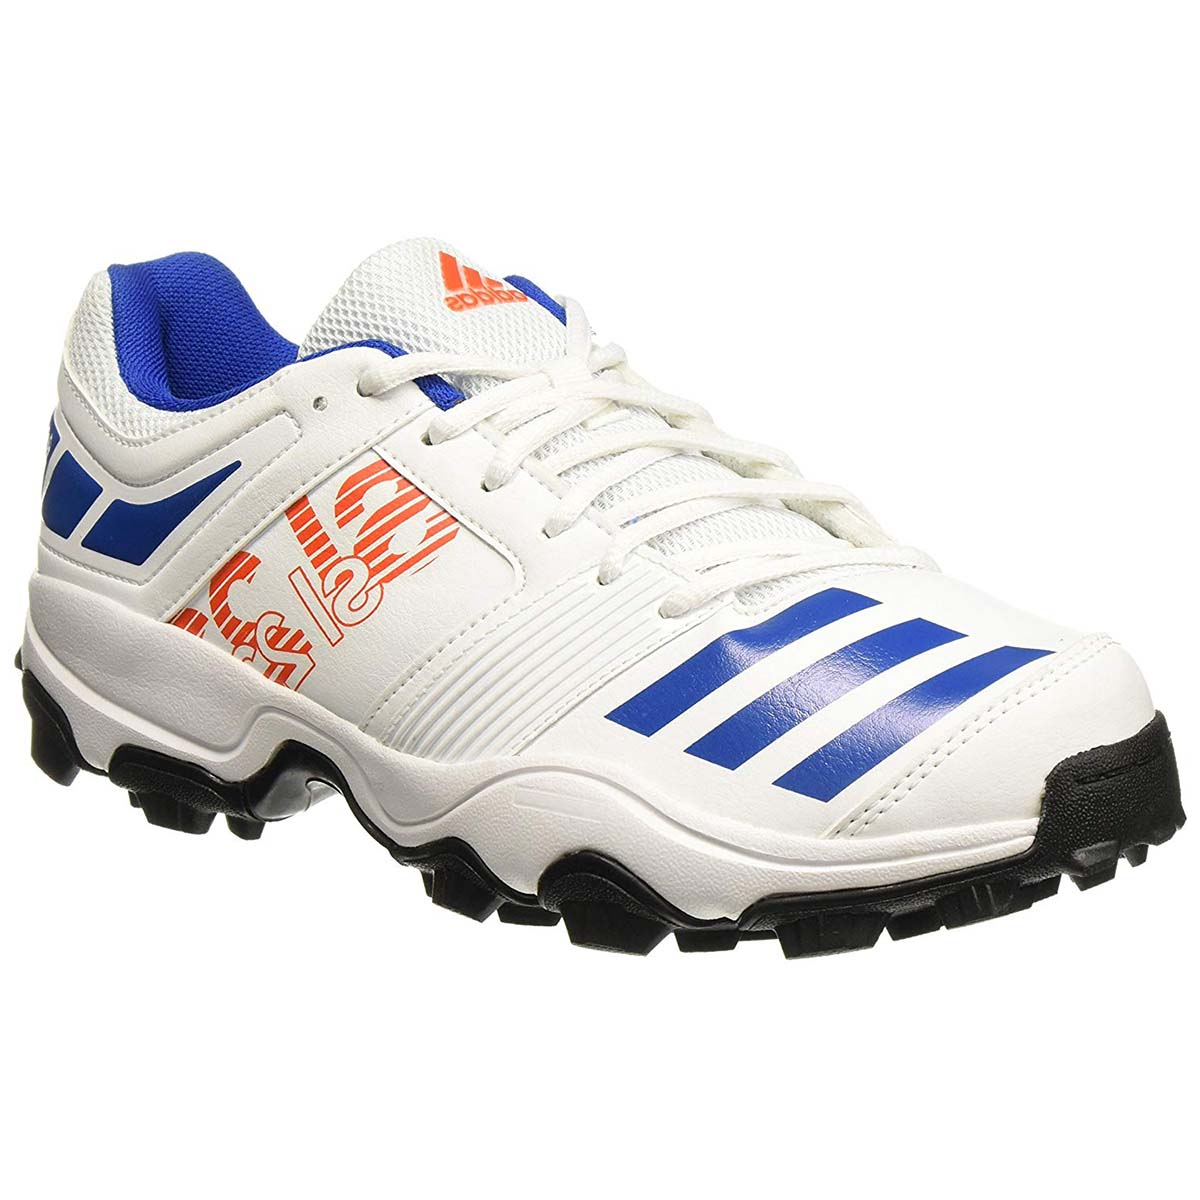 super popular 515b7 021d3 Buy Adidas SL22 Trainer 2017 Cricket Shoes Online in India